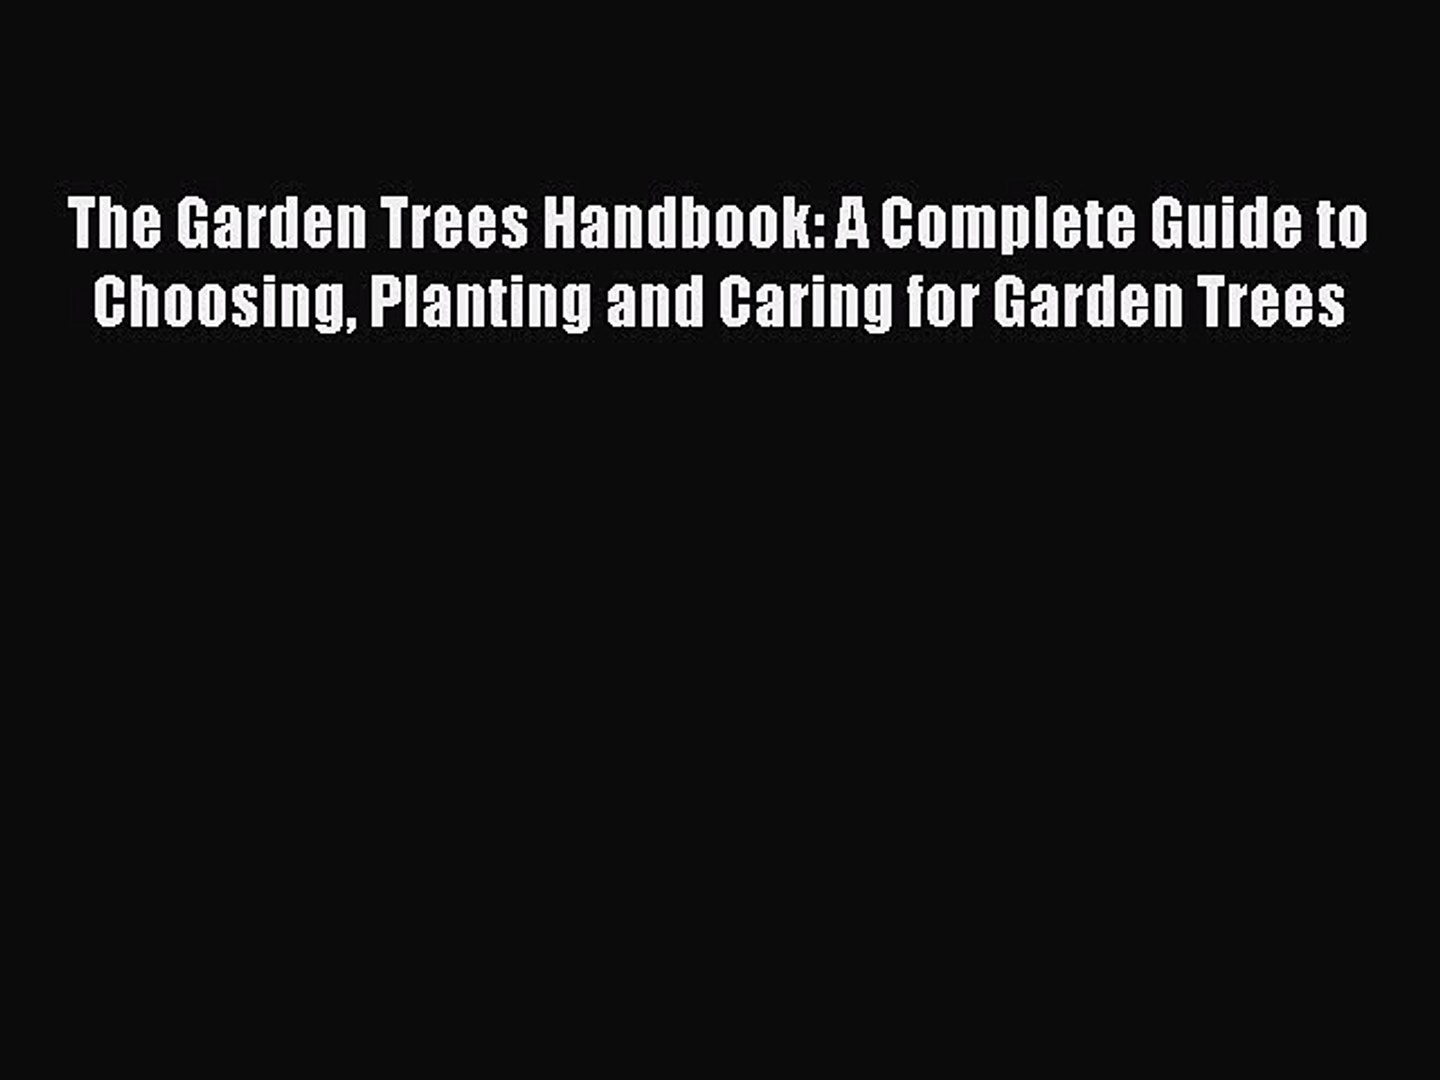 Read The Garden Trees Handbook: A Complete Guide to Choosing Planting and Caring for Garden